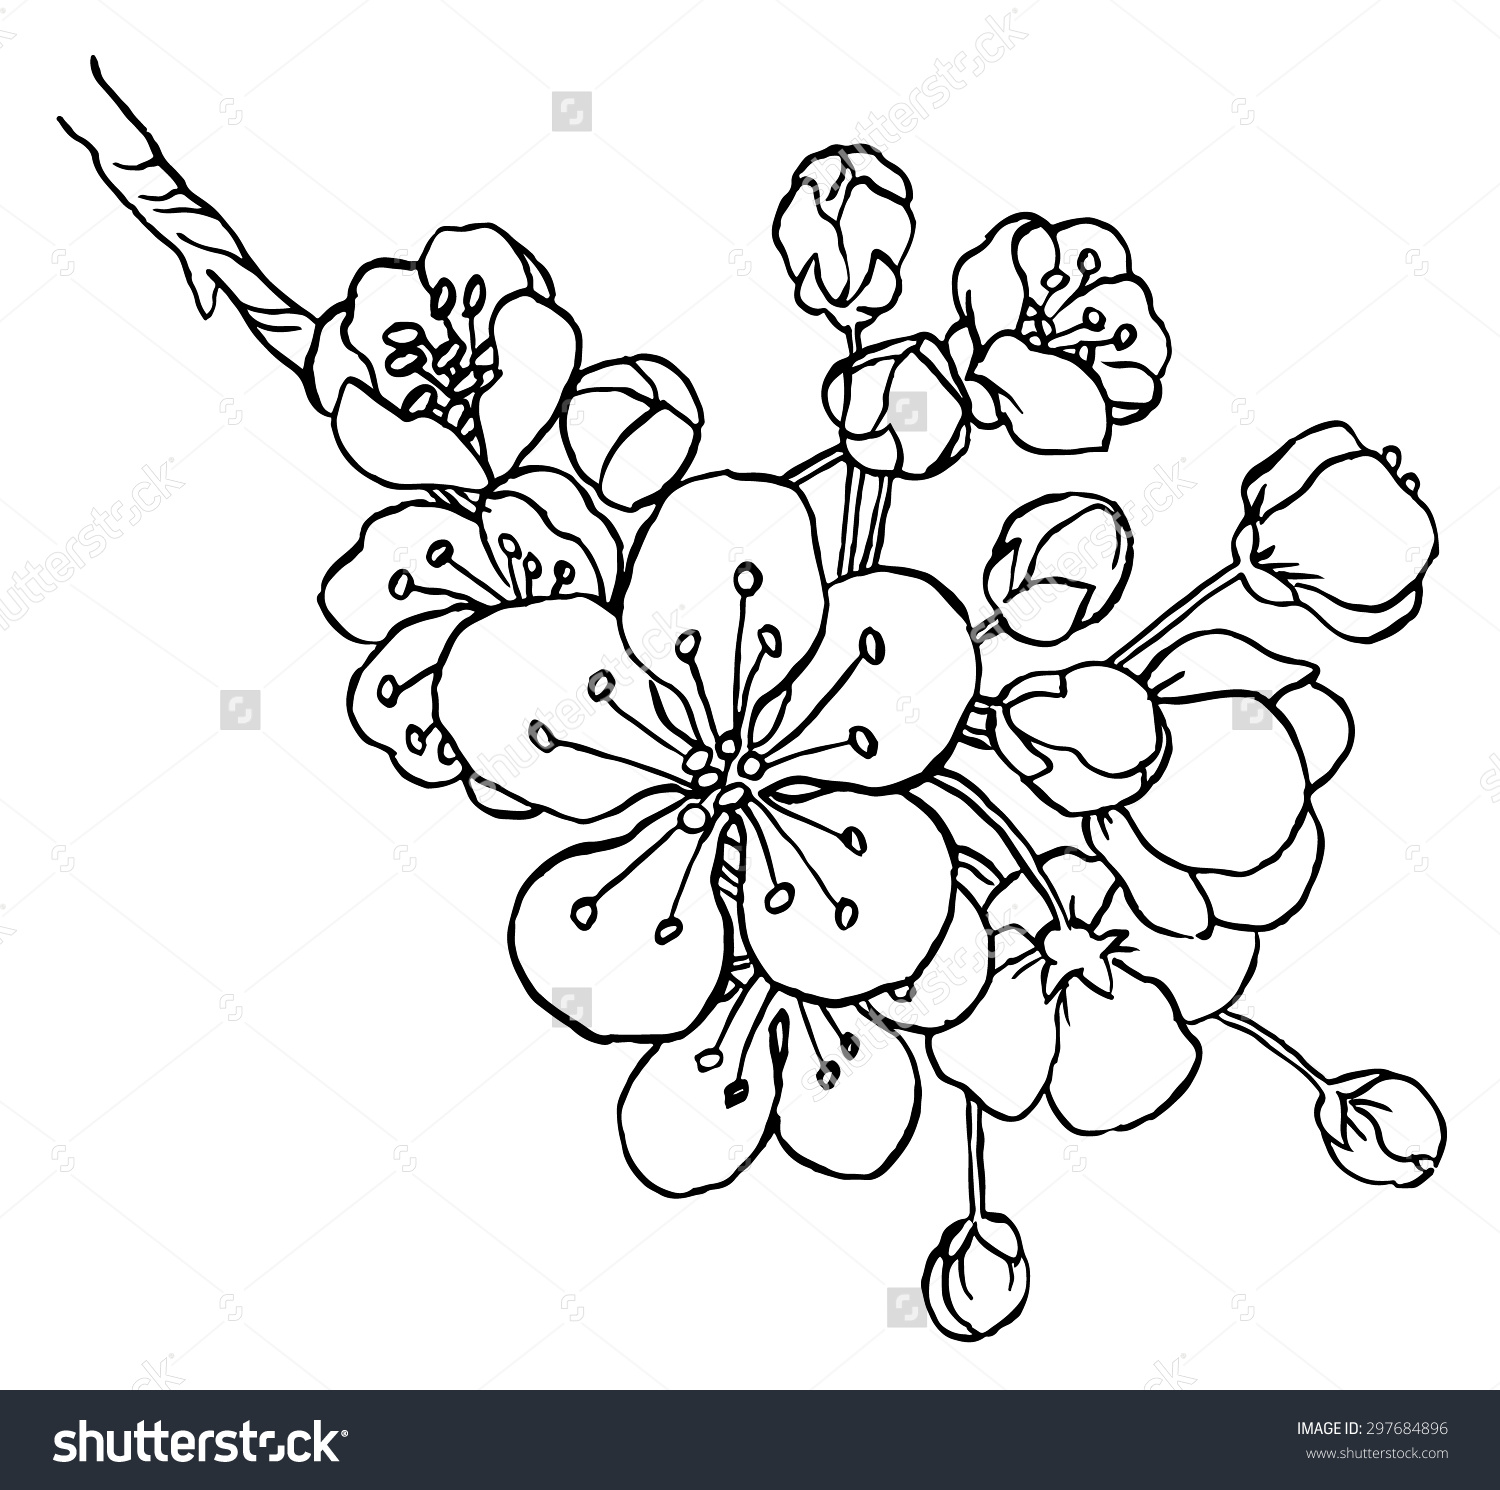 1500x1490 Stock Vector Hand Drawing Apple Tree Branch In Blossom Line Art